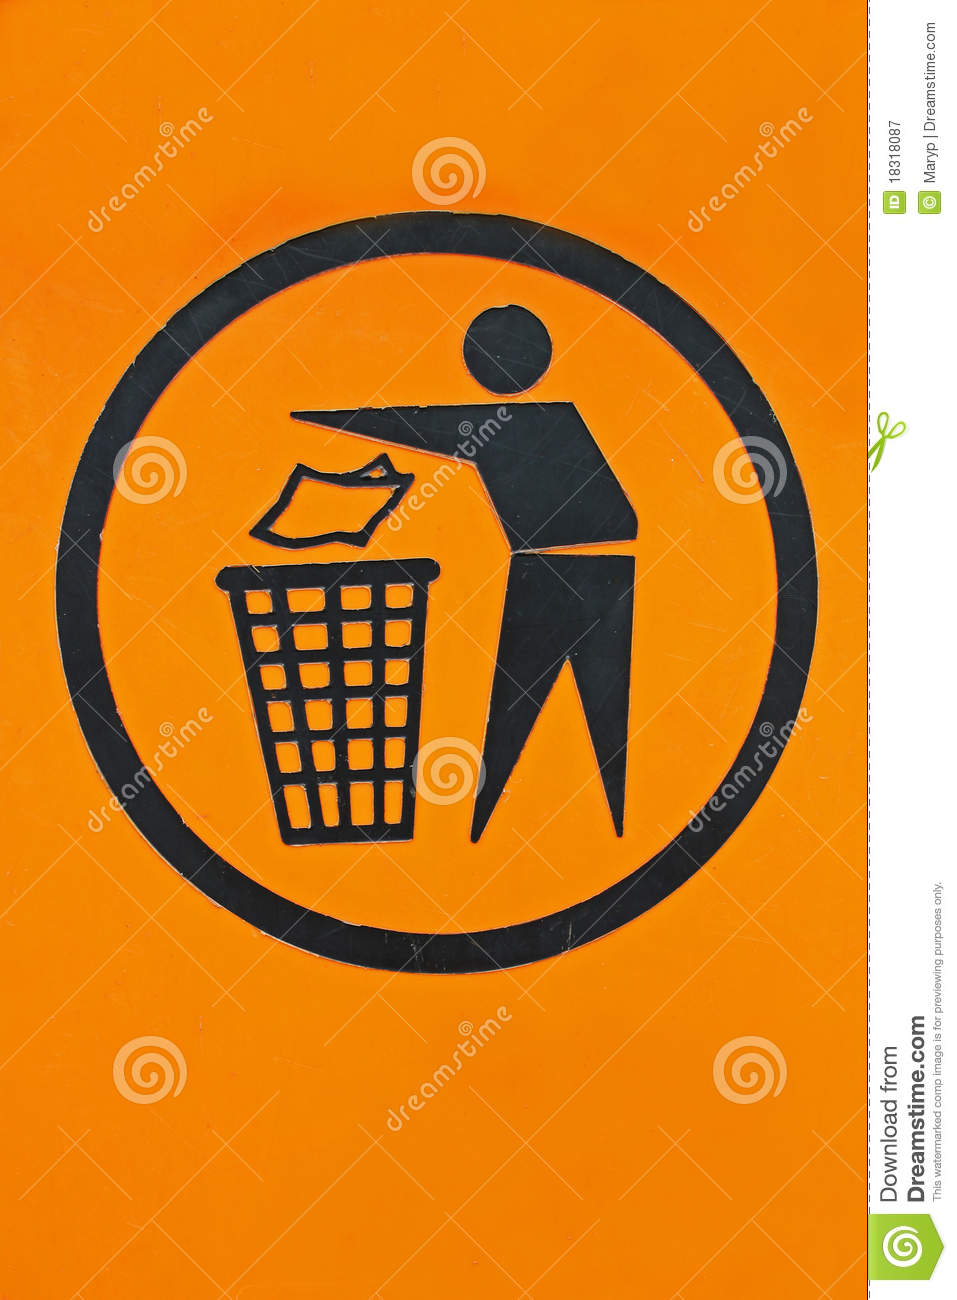 recycle bin sign royalty free stock photography